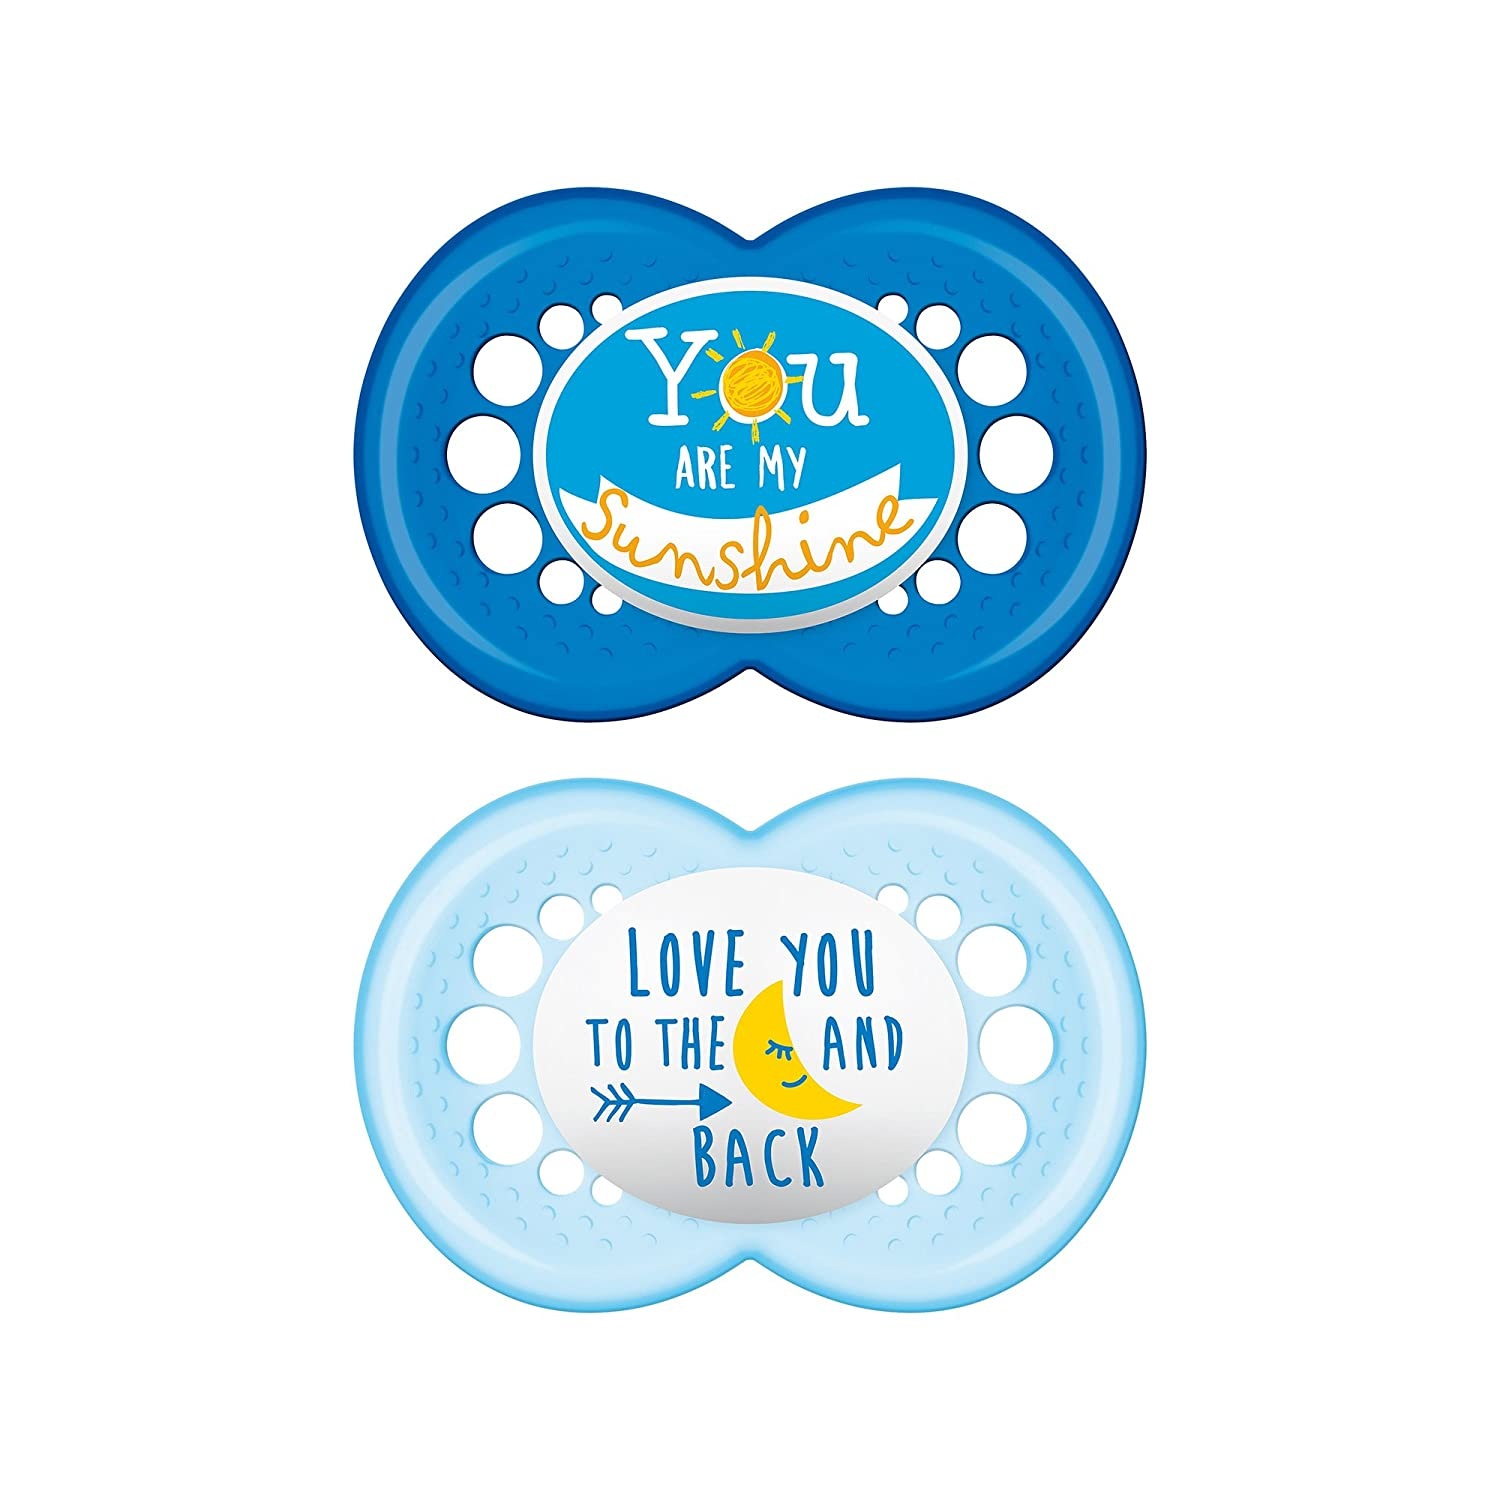 Best Pacifier for Breastfed Babies MAM Pacifier 0-6 Months Baby Boy Pacifier 2 pack, 1 Sterilizing Pacifier Case Designs May Vary MAM Attitude Collection Pacifiers